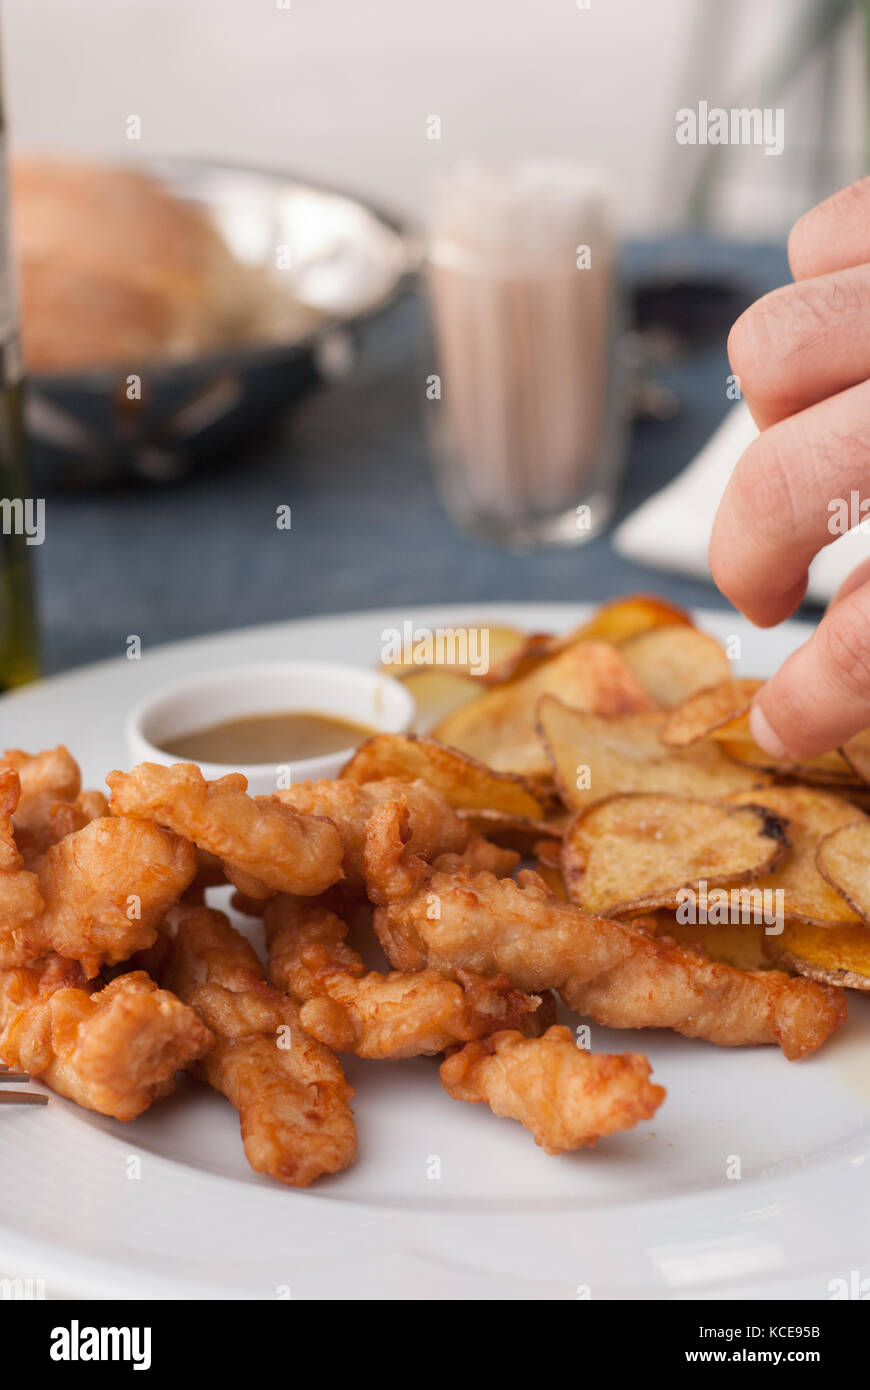 Fresh fried chicken fingers in a plate - Stock Image